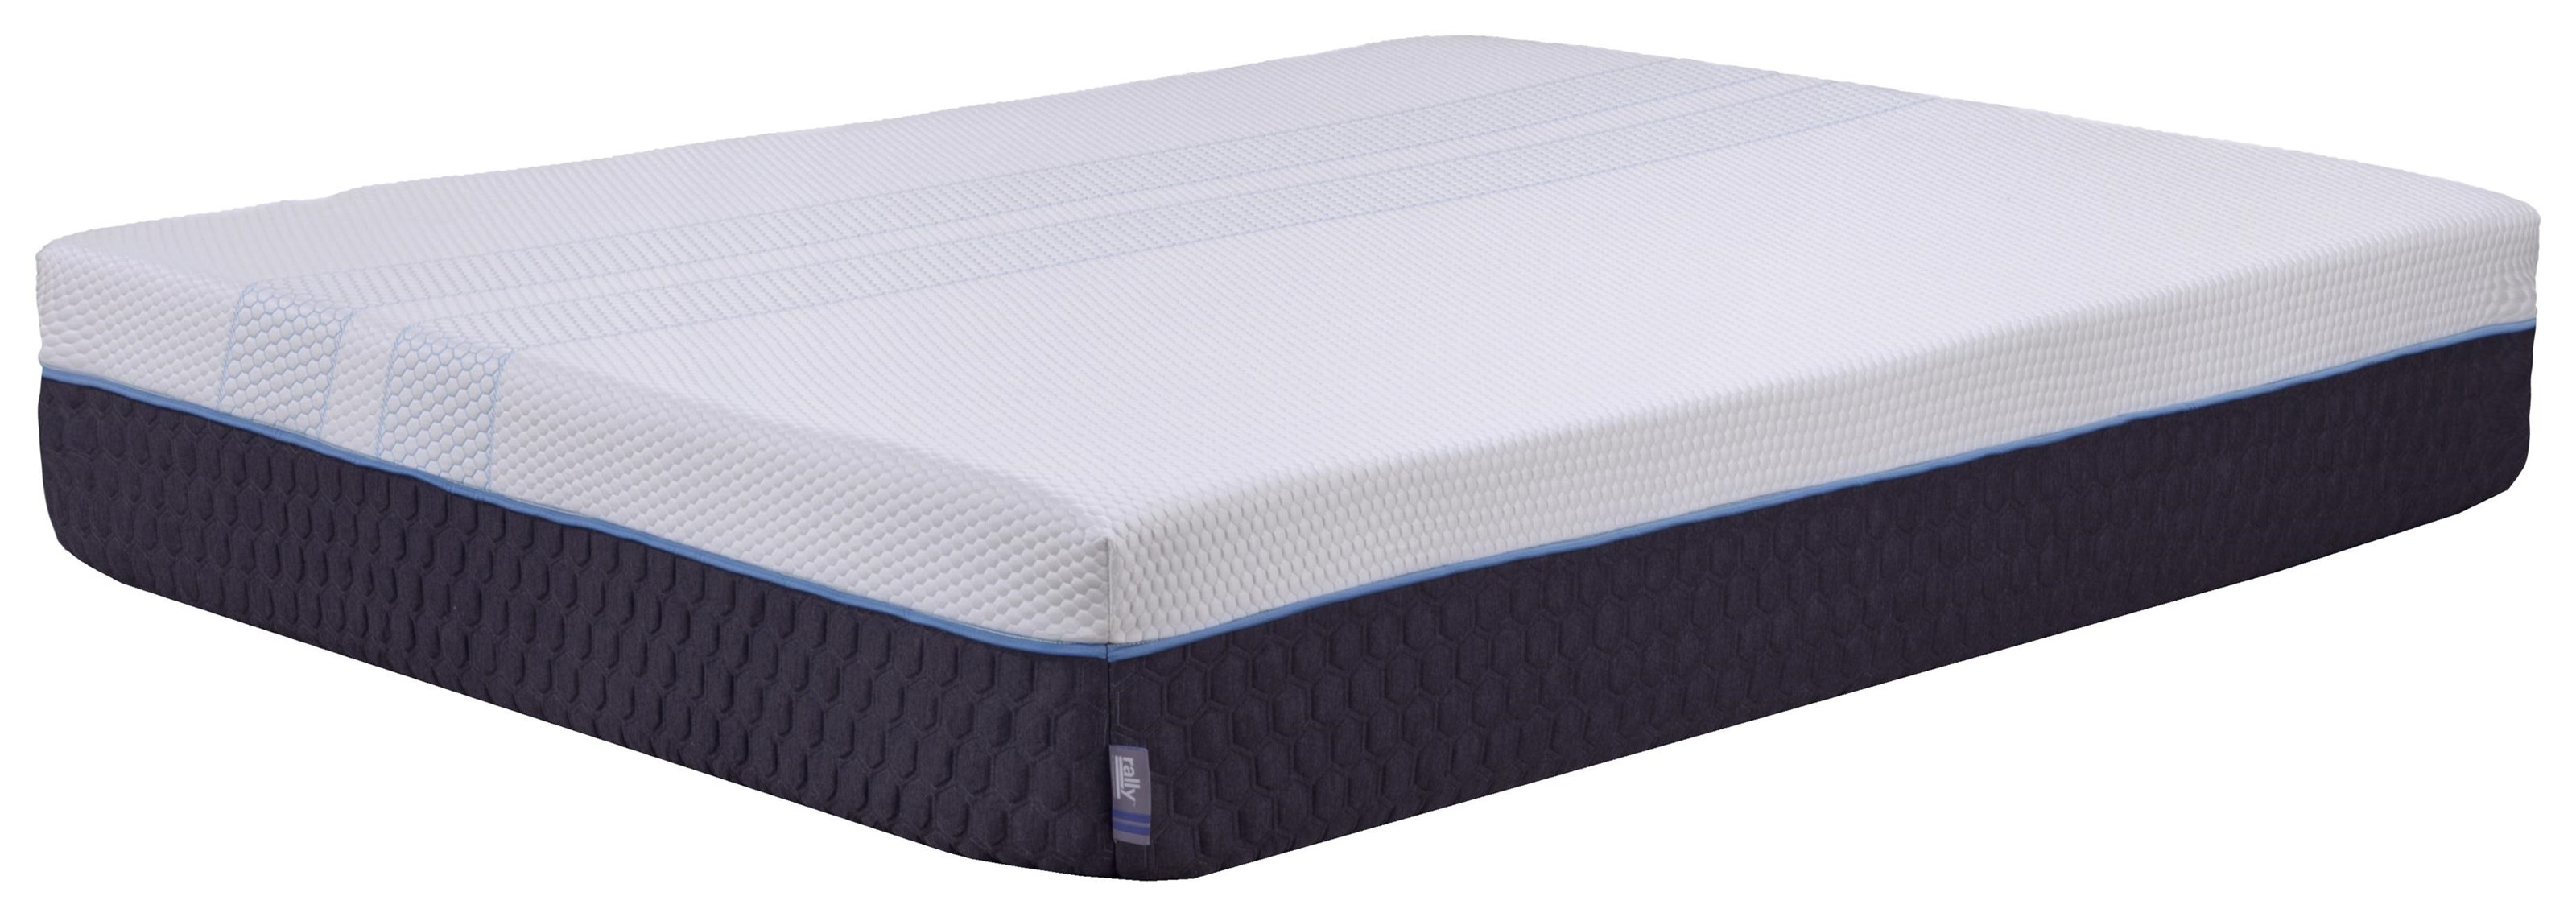 Rally Hybrid Cooling Firm Twin XL Firm Hybrid Cooling Mattress in a Bo by Diamond Mattress at Beck's Furniture